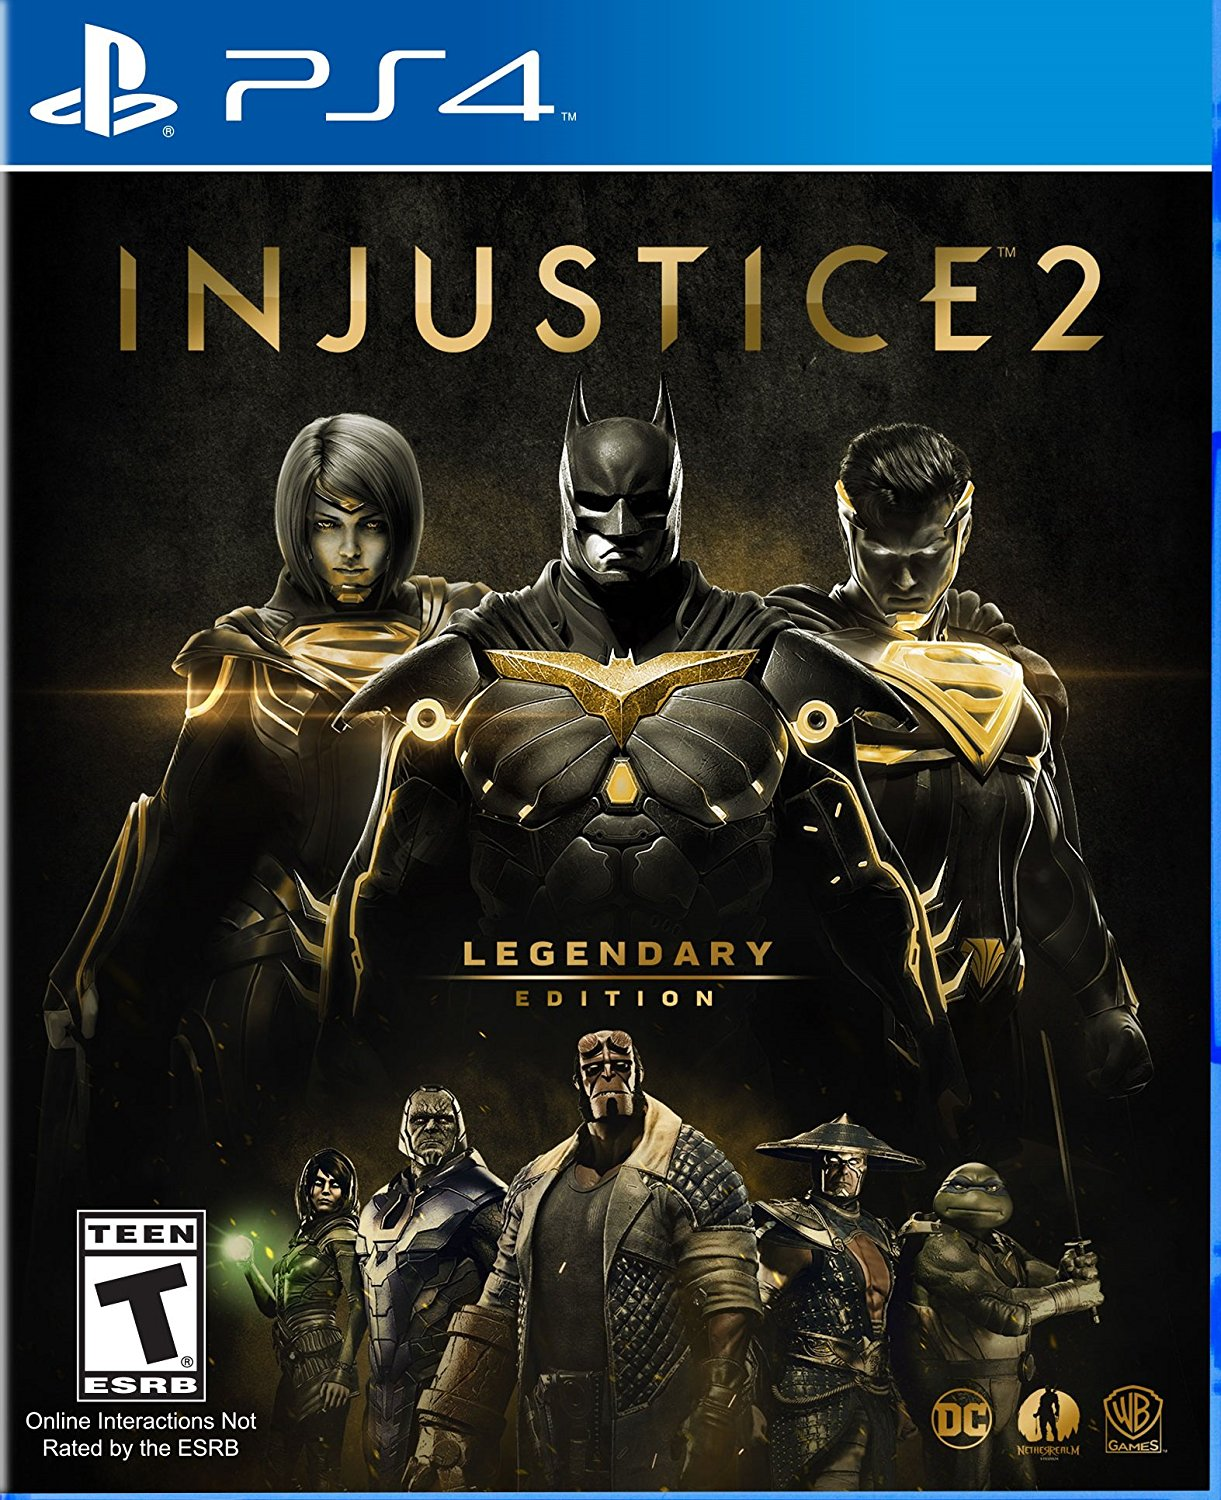 Injustice 2 Legendary Edition Announced For March Release